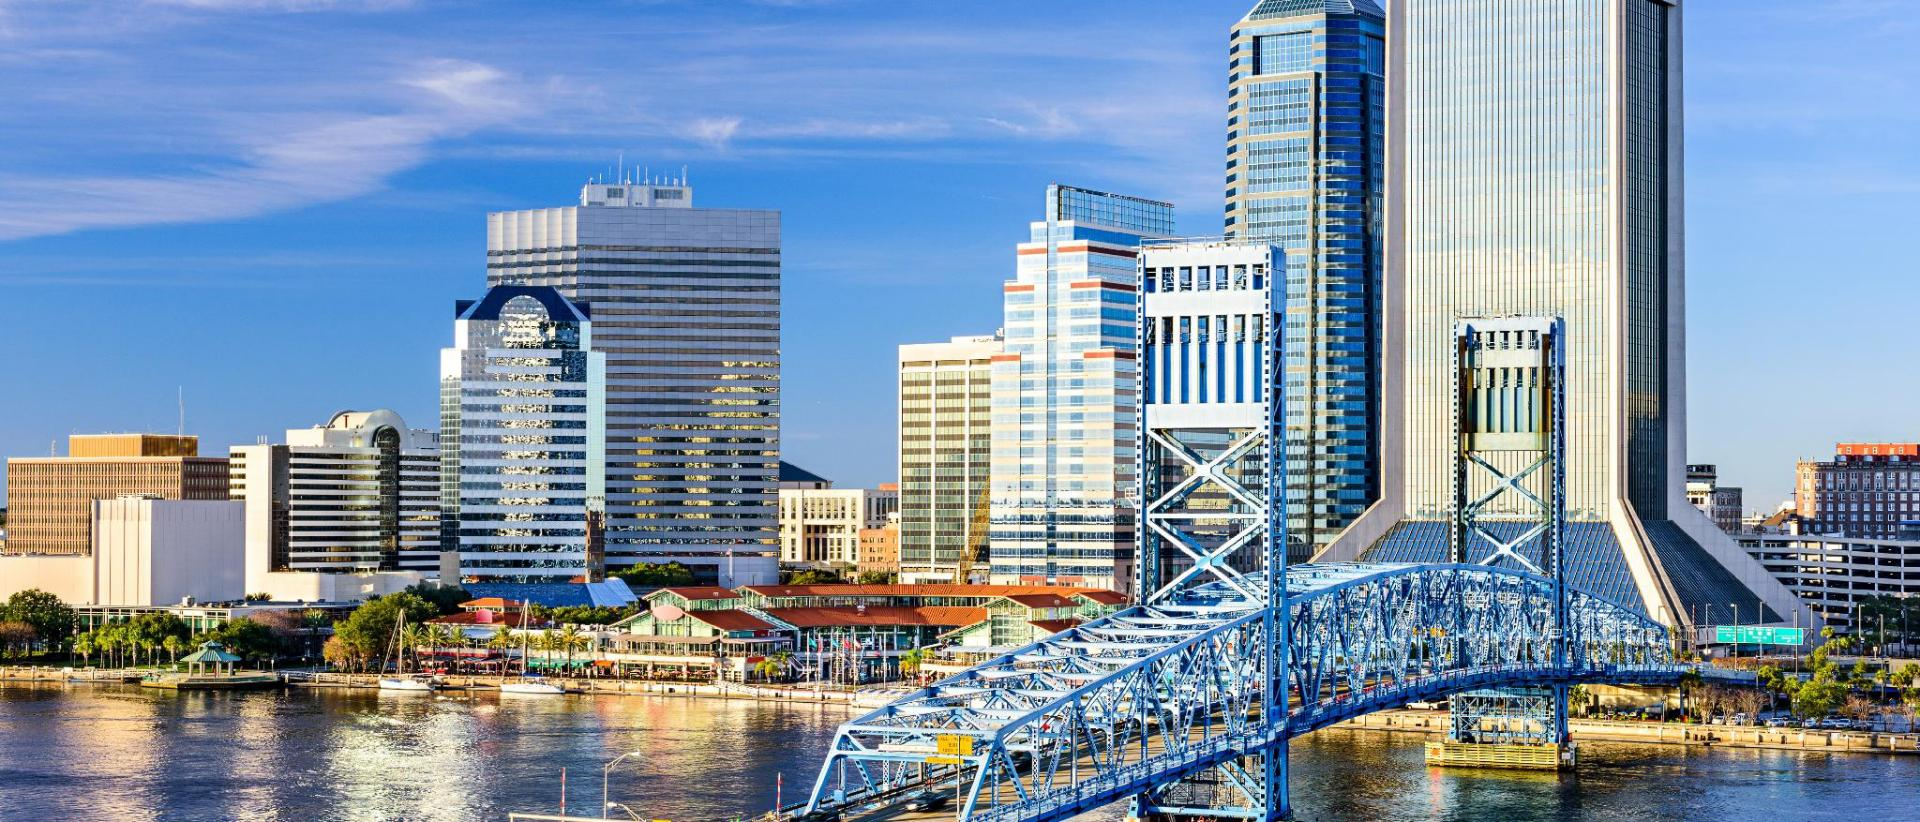 Map Of Hotels In Jacksonville Florida Jacksonville Beach Map and Hotels in Jacksonville Beach Area